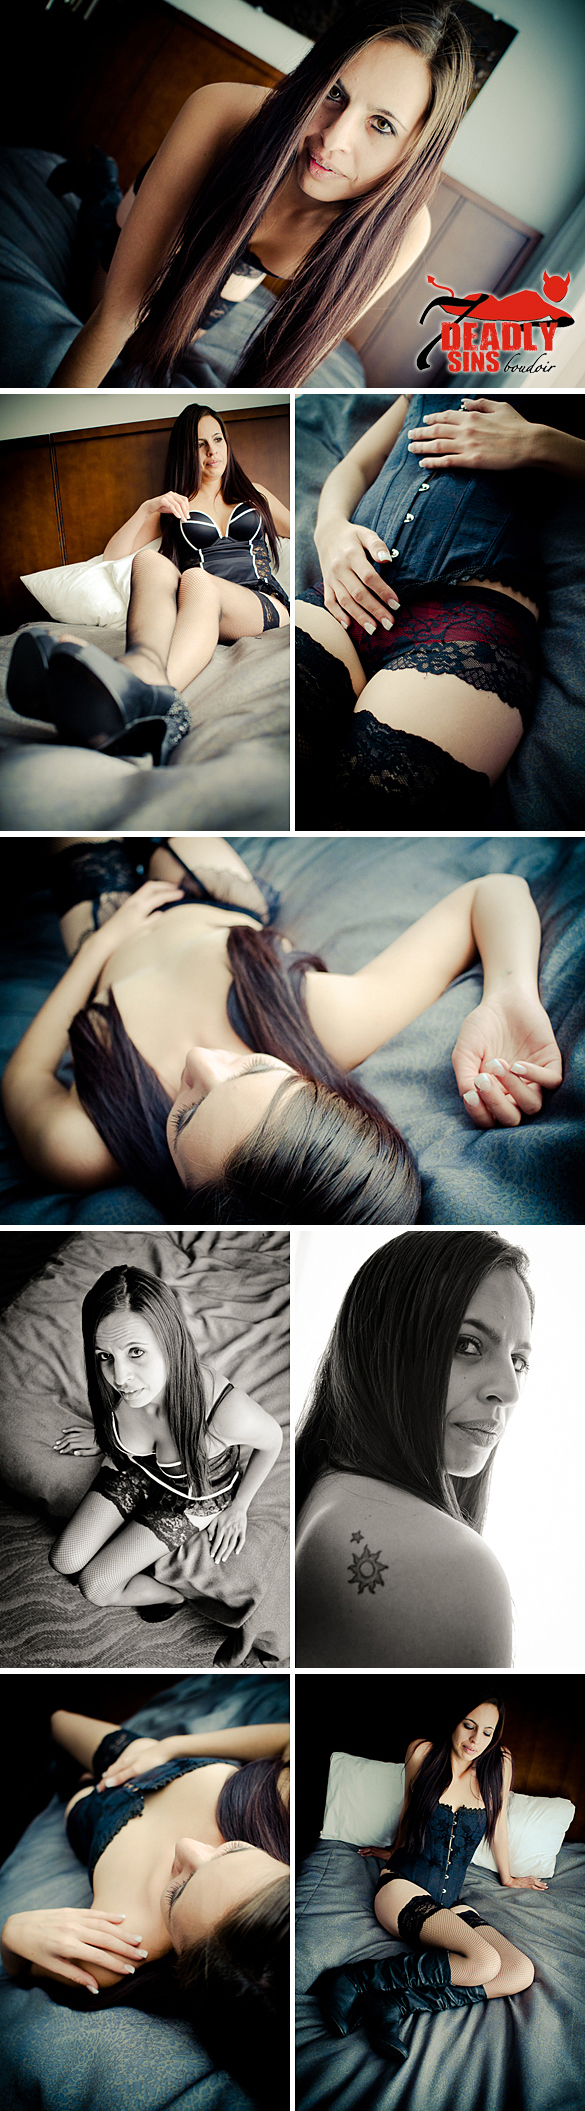 Boudoir Edmonton Photos